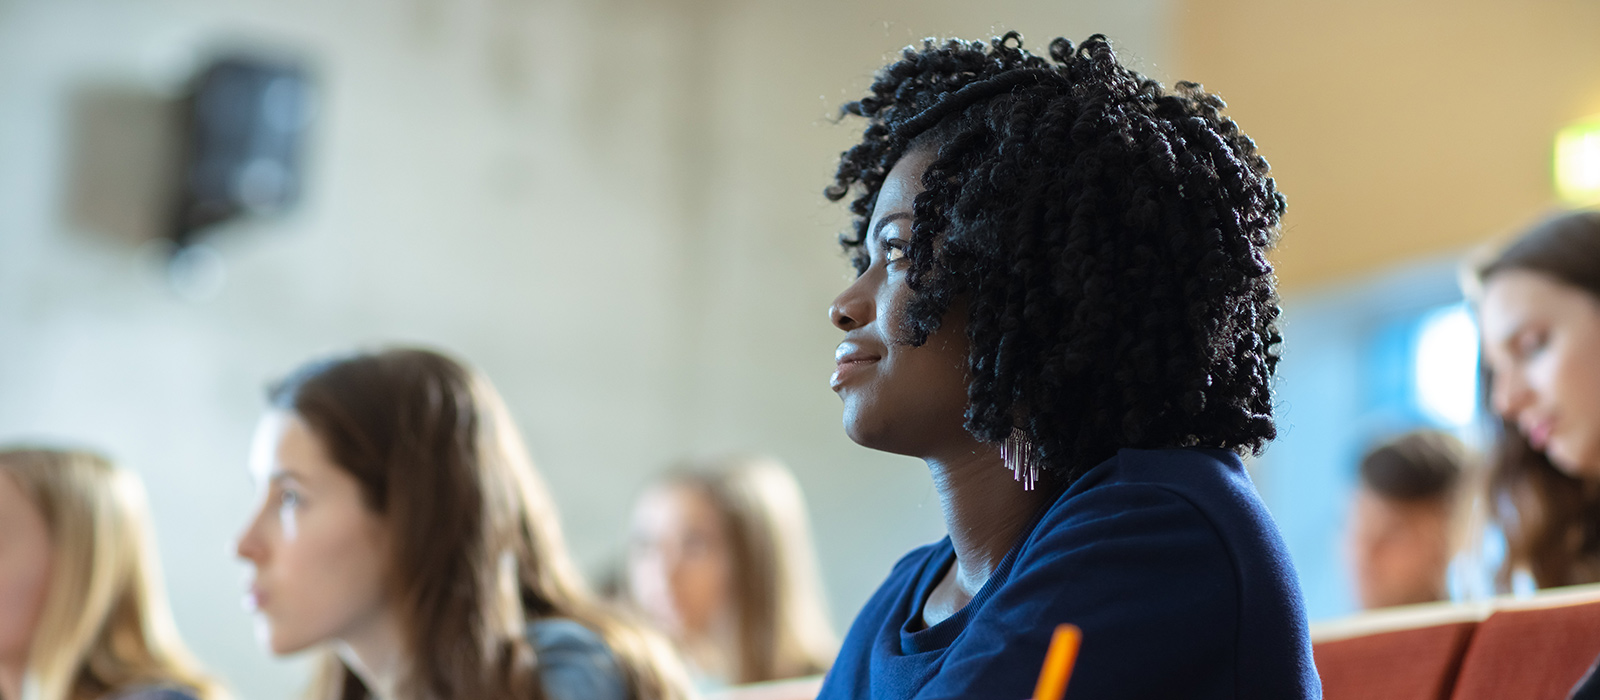 A Black student sitting in a lecture room